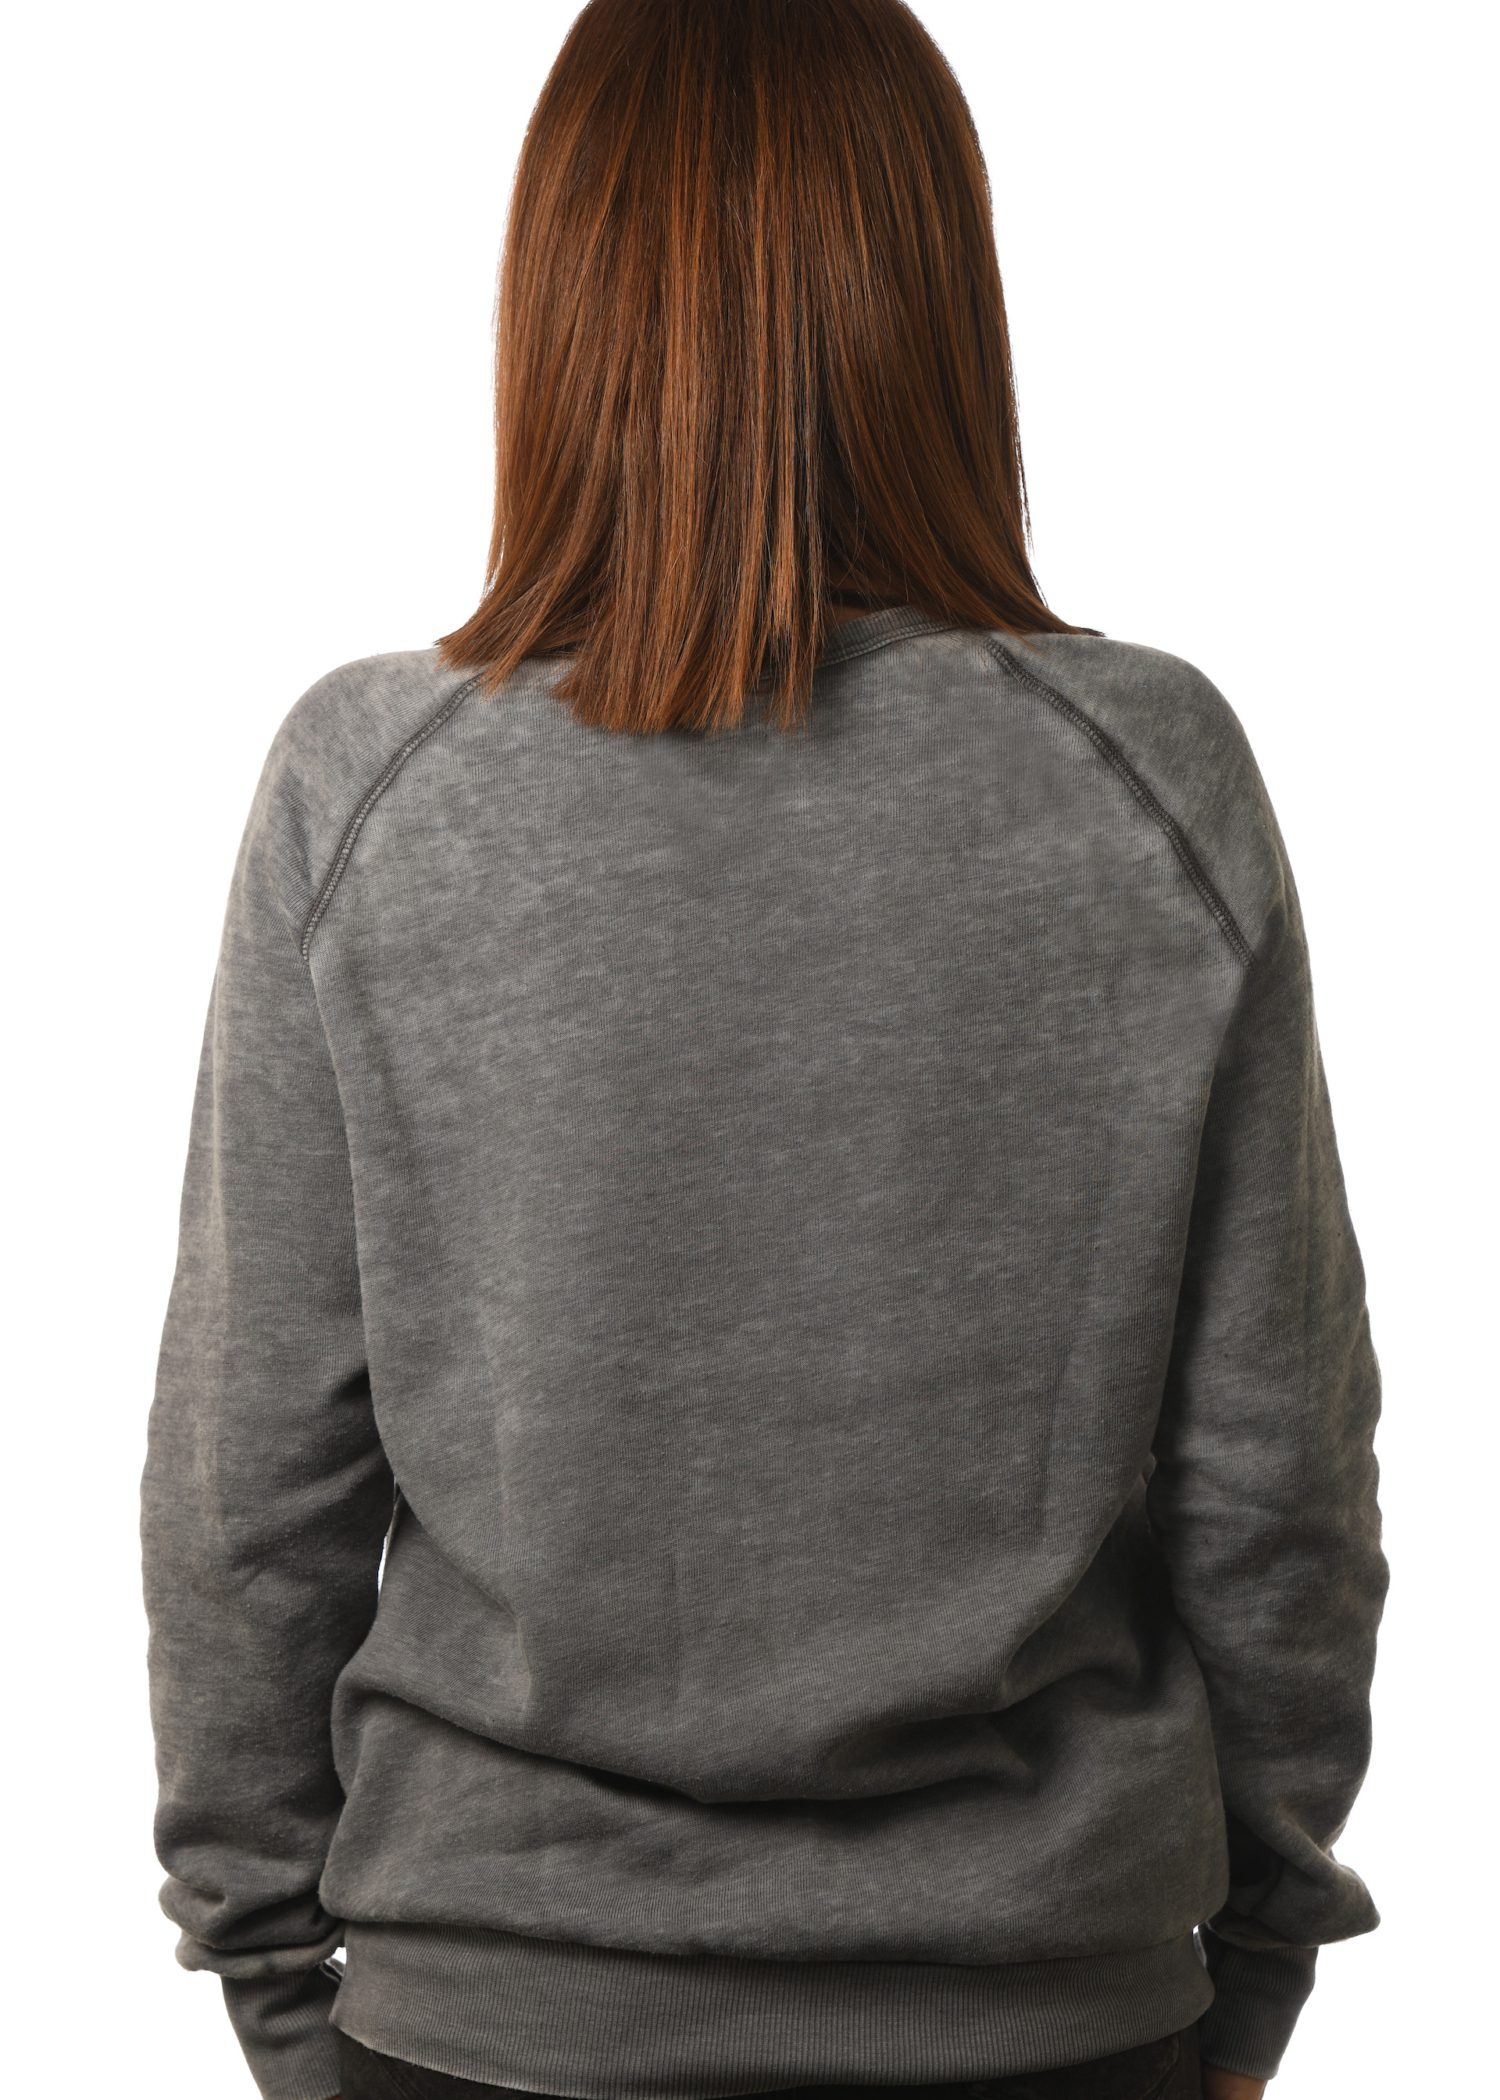 GG 798-B Unisex 'Wornwash' Old School Fleece Raglan Back 1